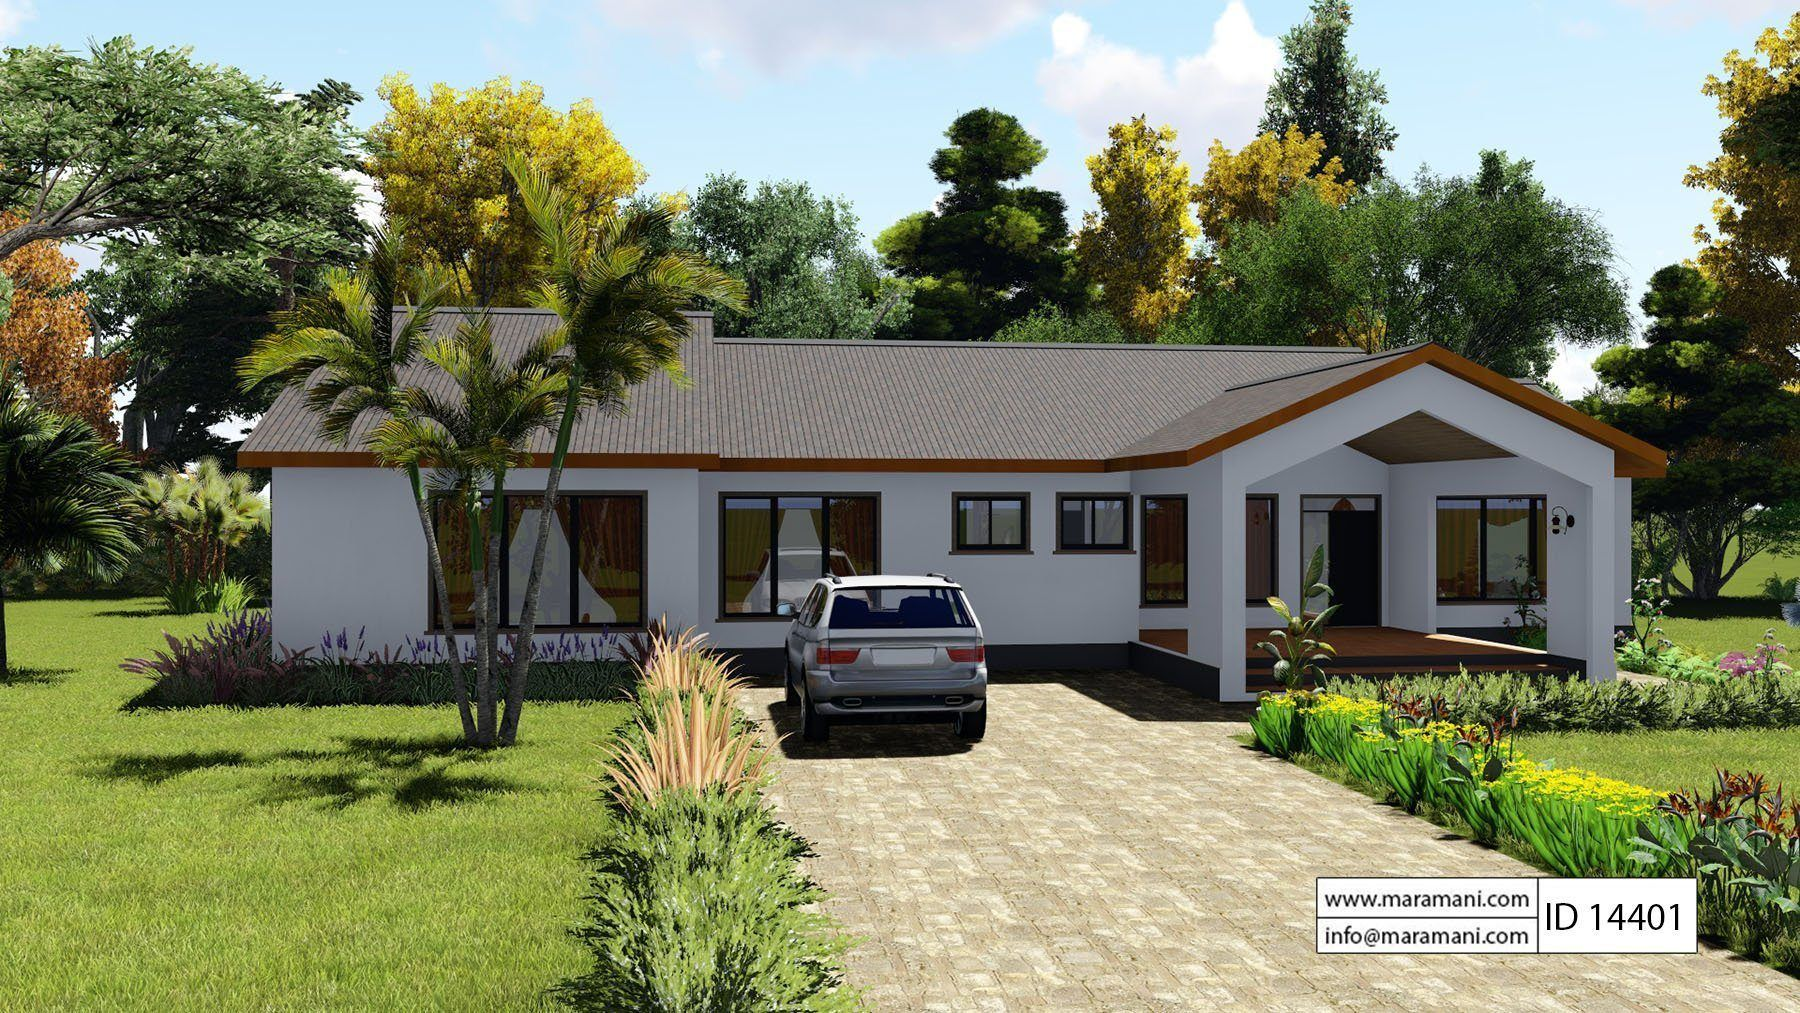 4 Bedroom House Plan Id 14401 Countryside House House Plans 4 Bedroom House Plans